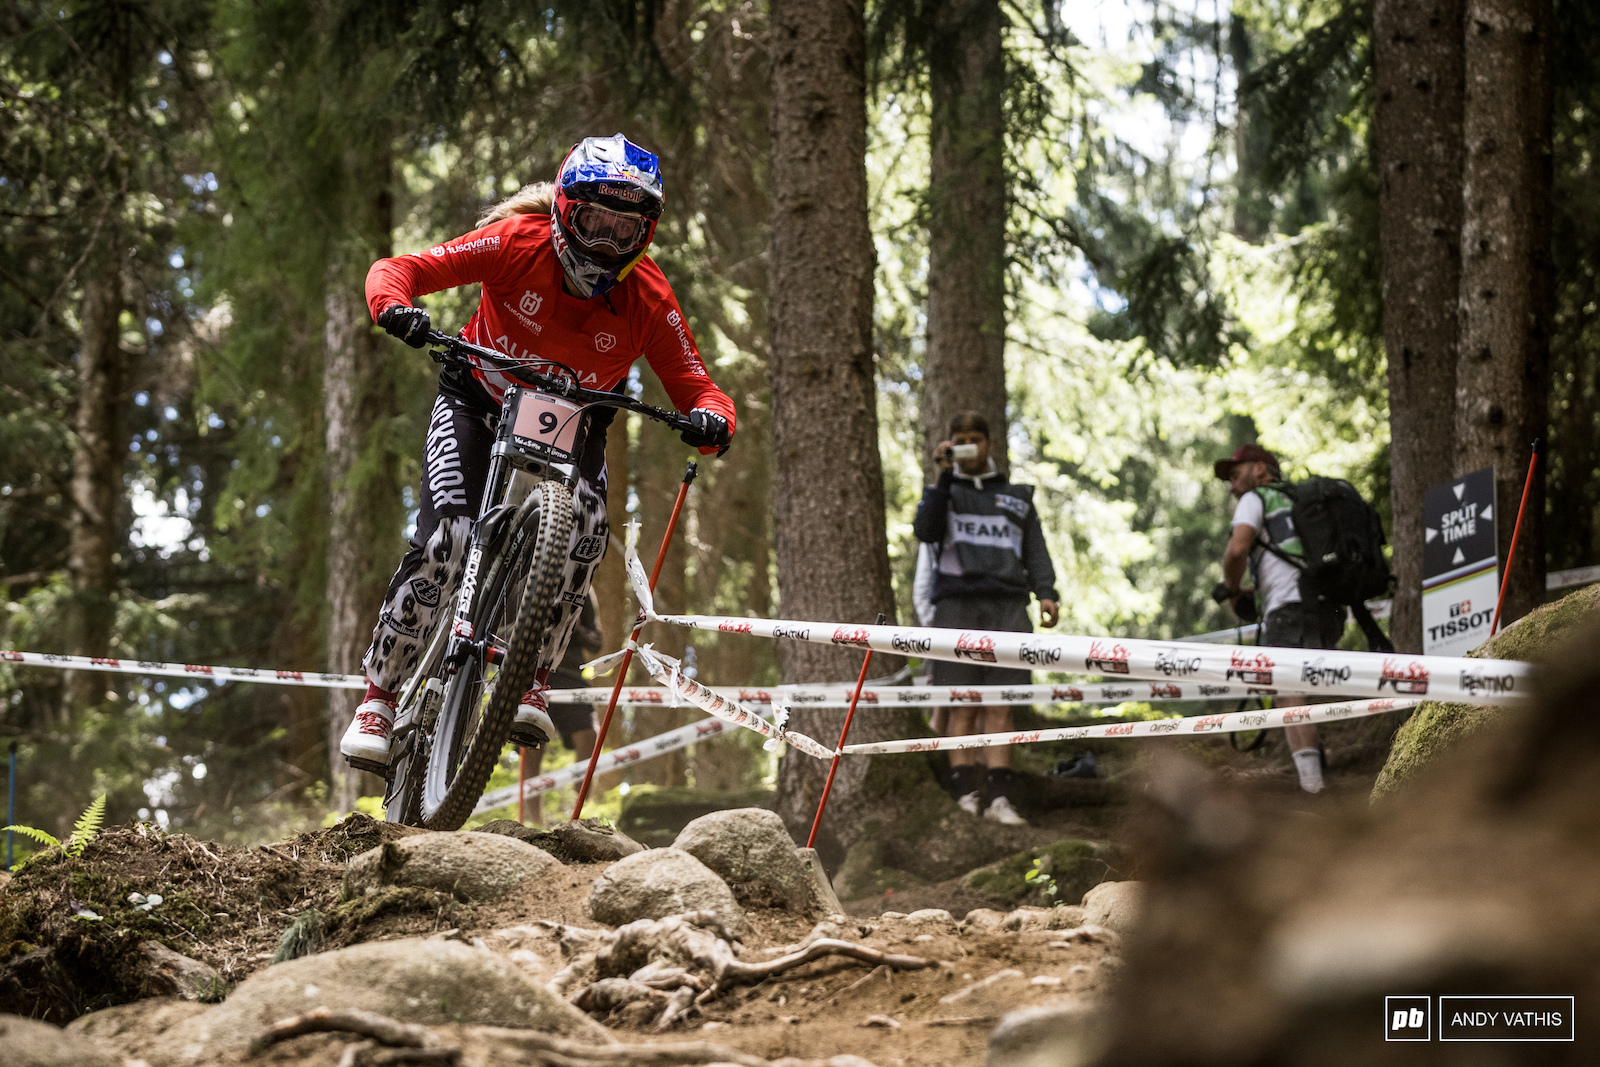 Vali Holl is your top Women s qualifier with Myriam Nicole hot on her heals. She s been everything but perfect on race day so far this year.